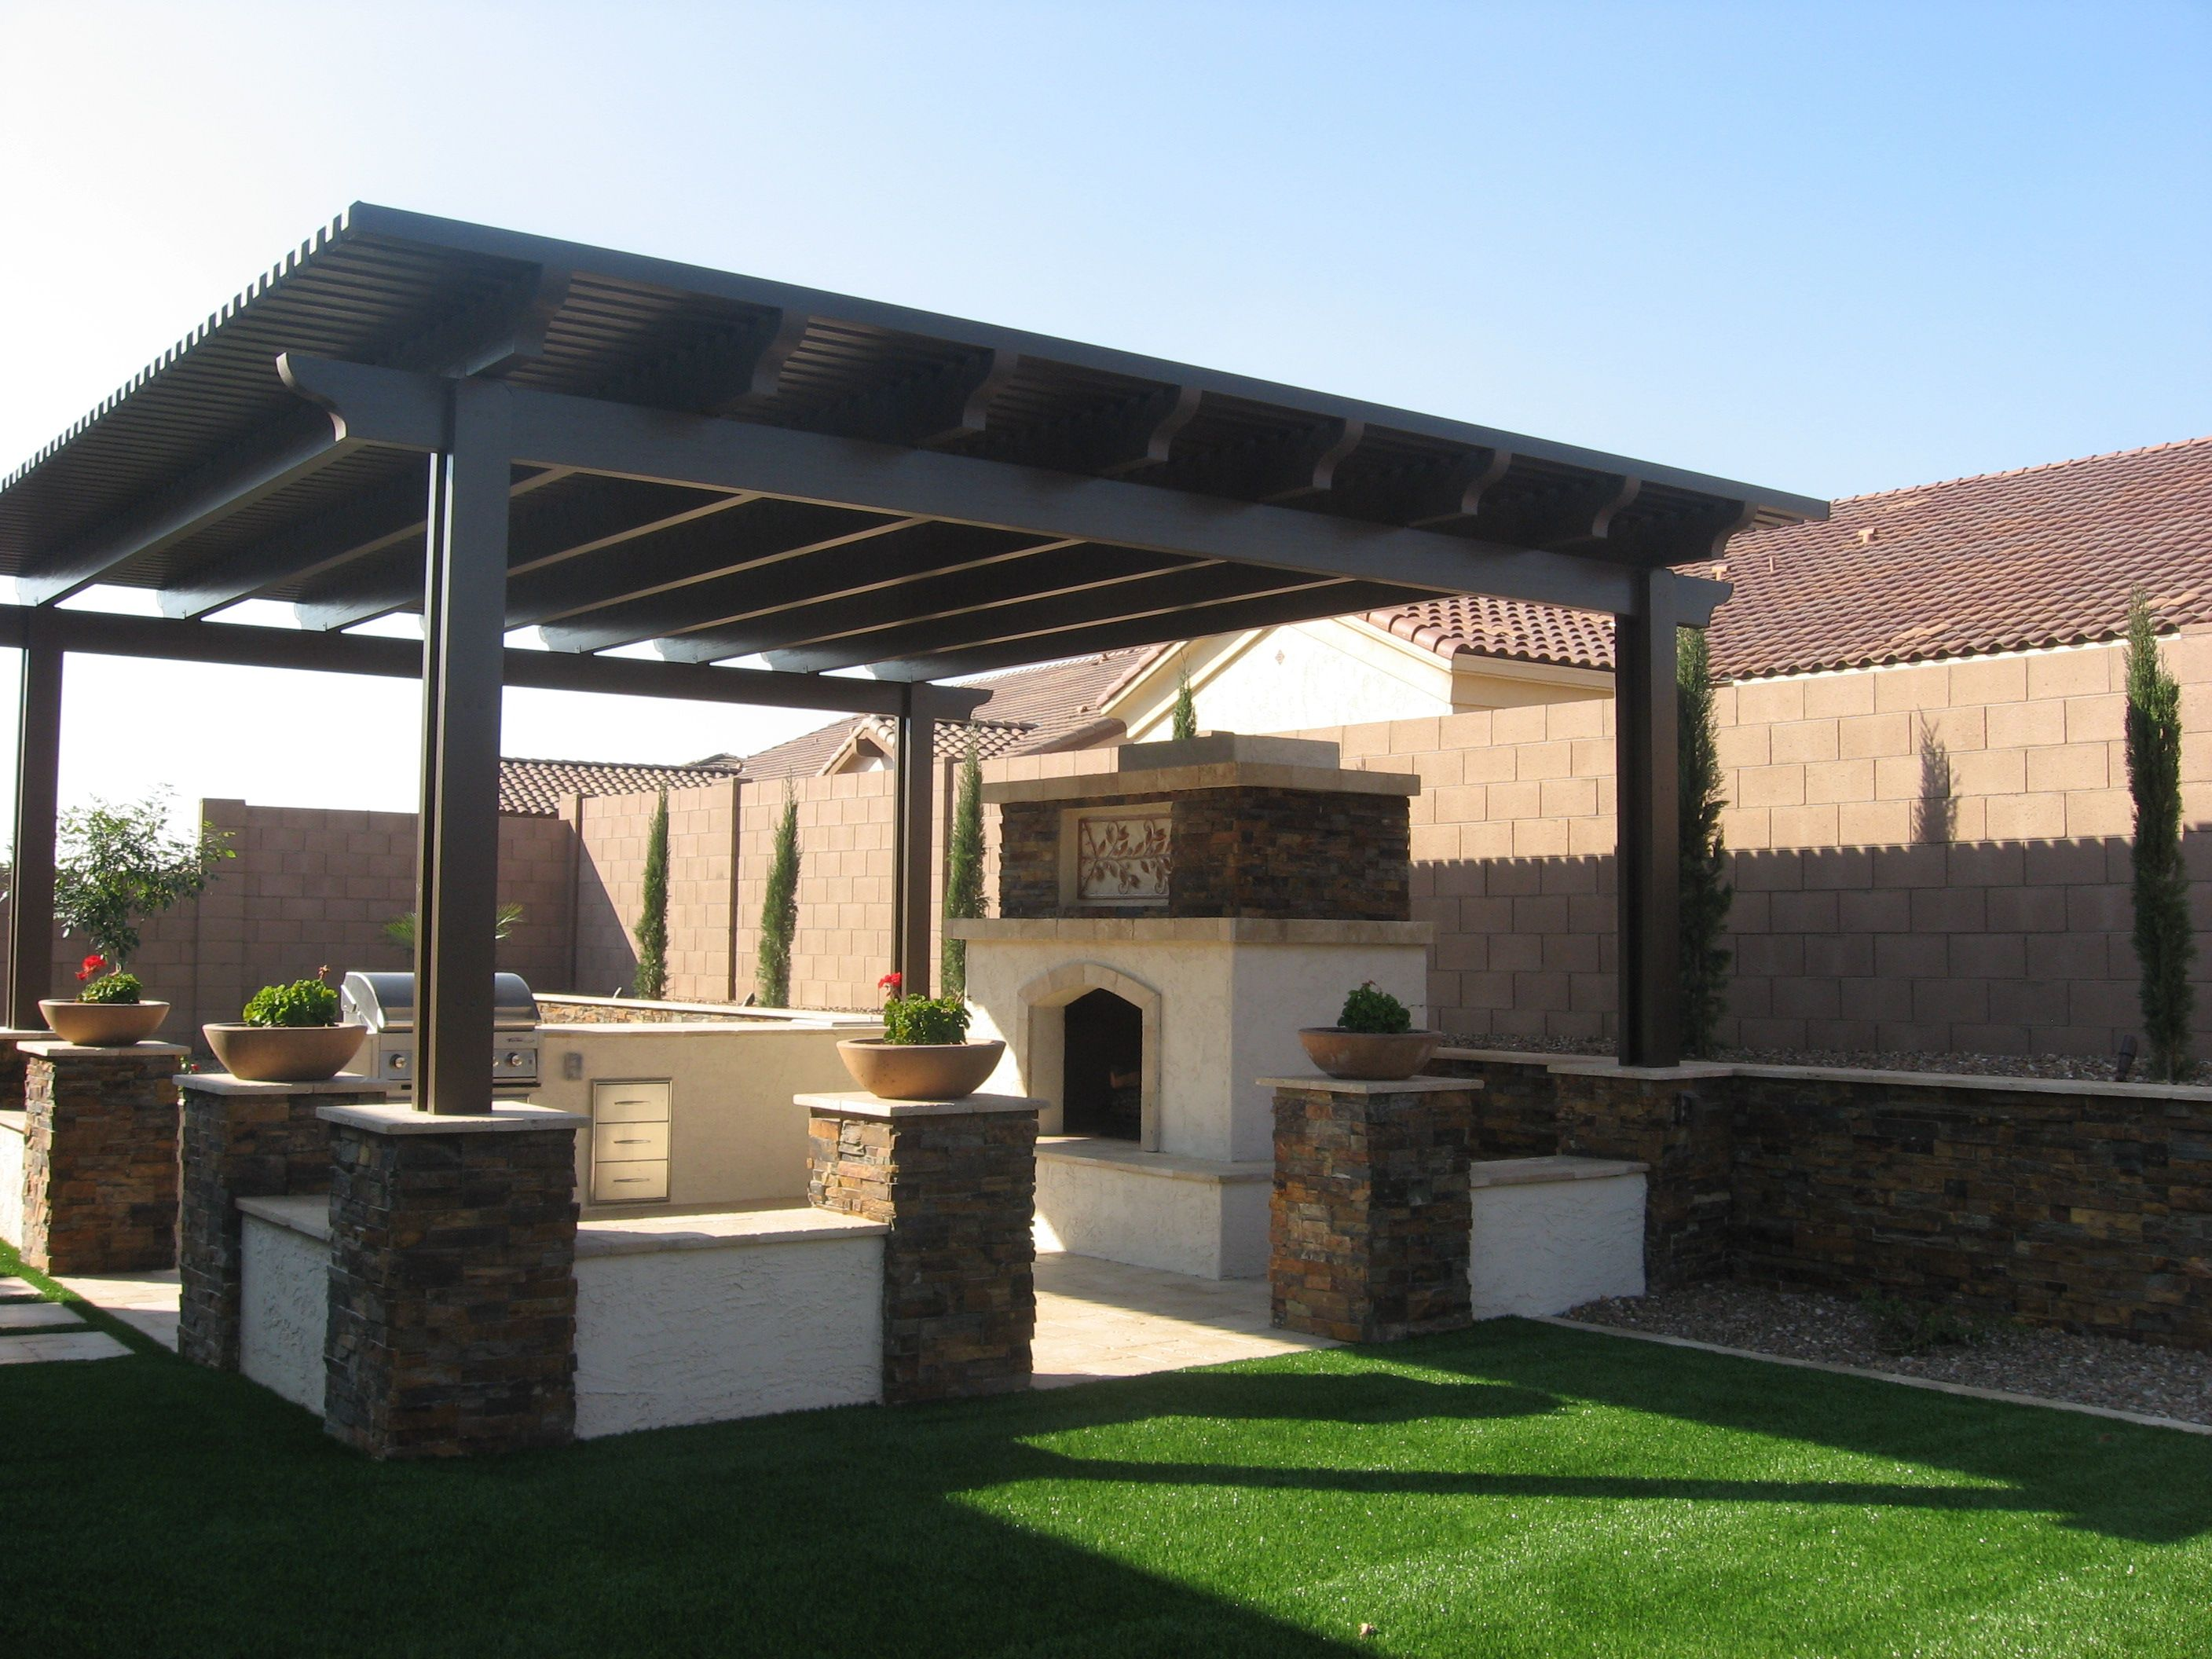 Ramada design plans designed pergolas and gazebos for for Garden cabana designs